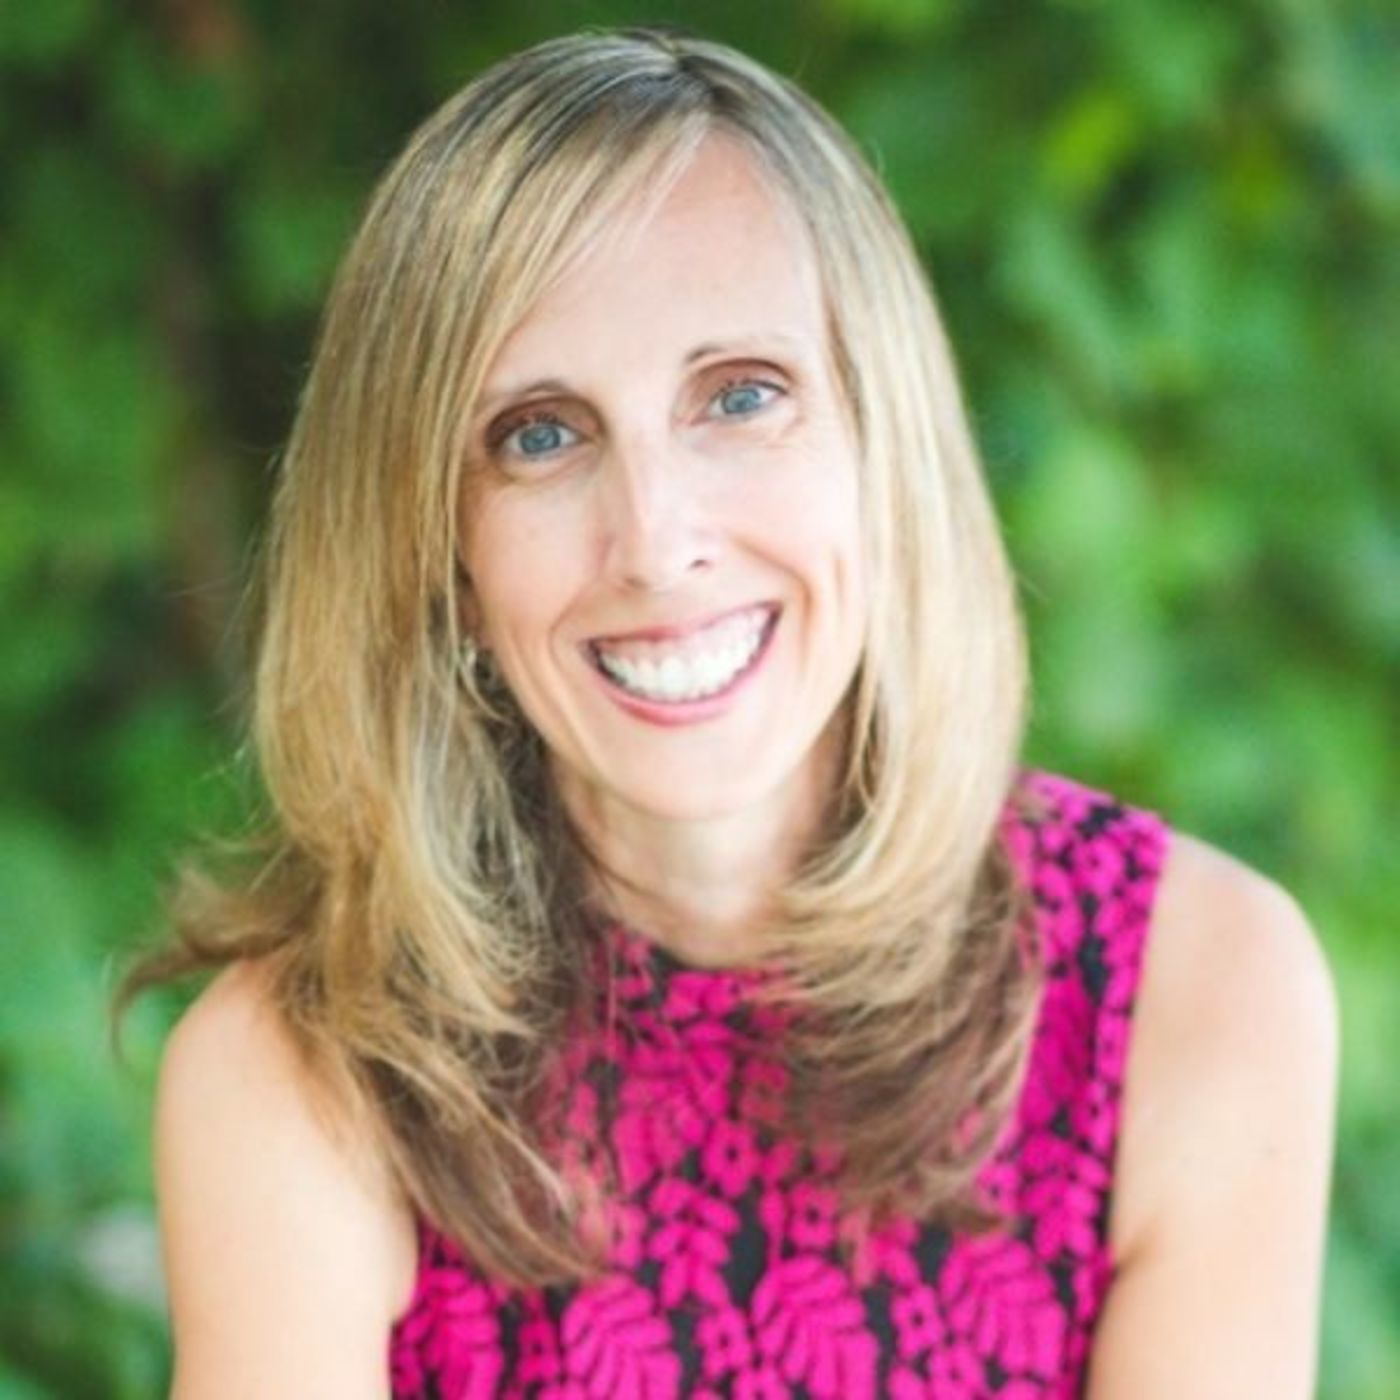 Evaluating Managerial Ability vs. Sales Acumen in the Enterprise w/ Kristen Harcourt